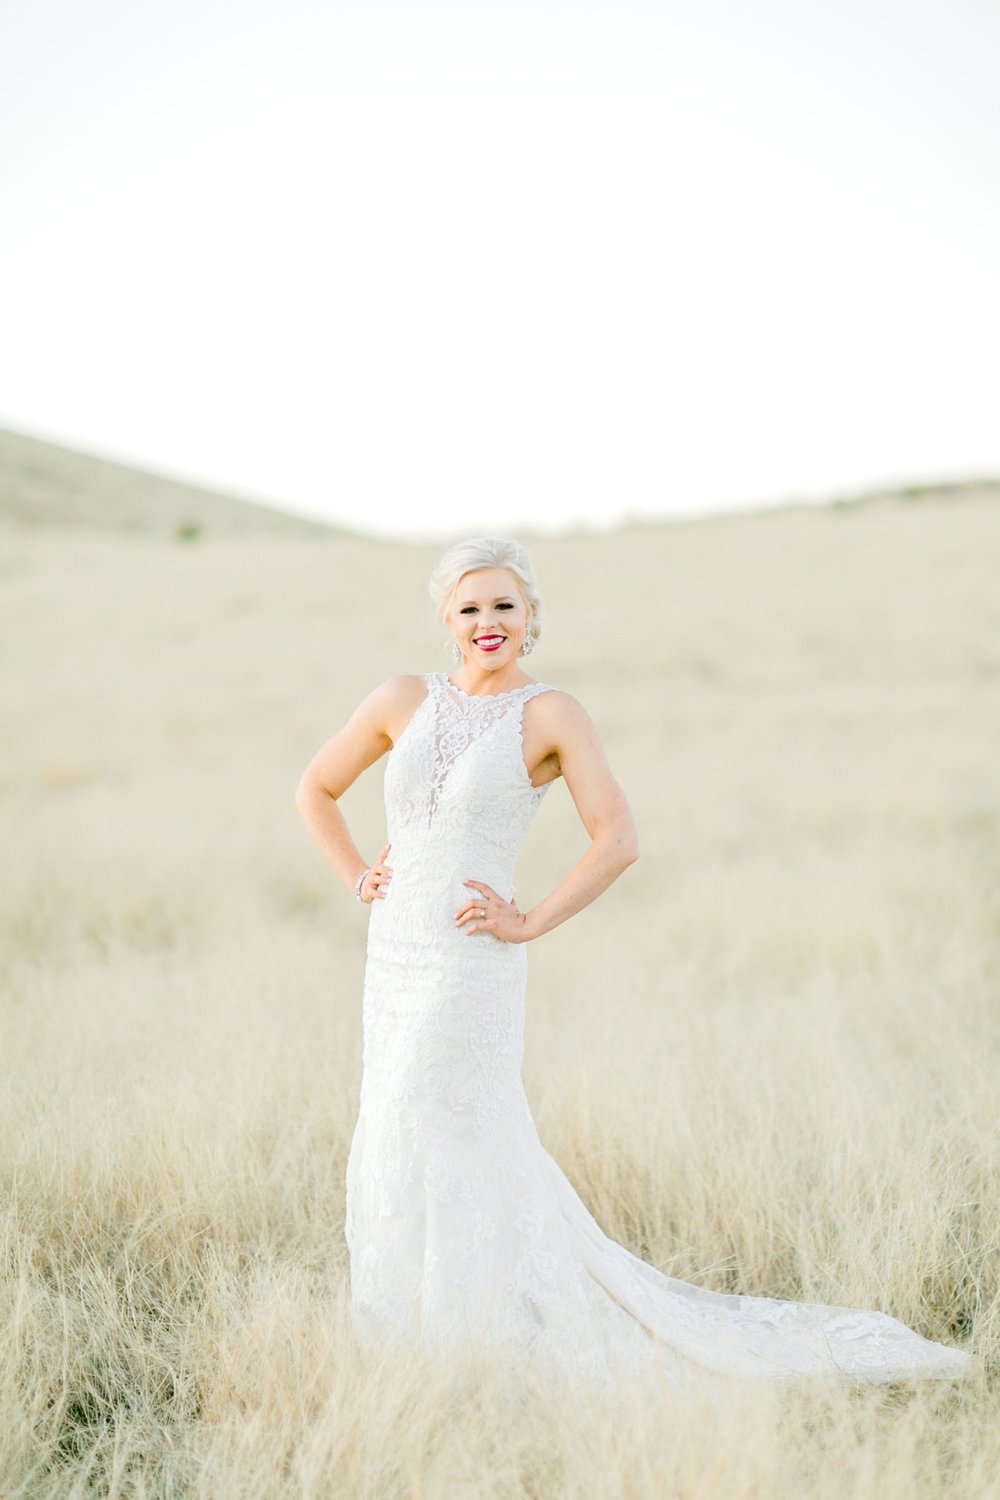 Jenna-evans-bridals-balmorhea-texas-fort-davis-wedding-photographer-lubbock-photographer__0070.jpg